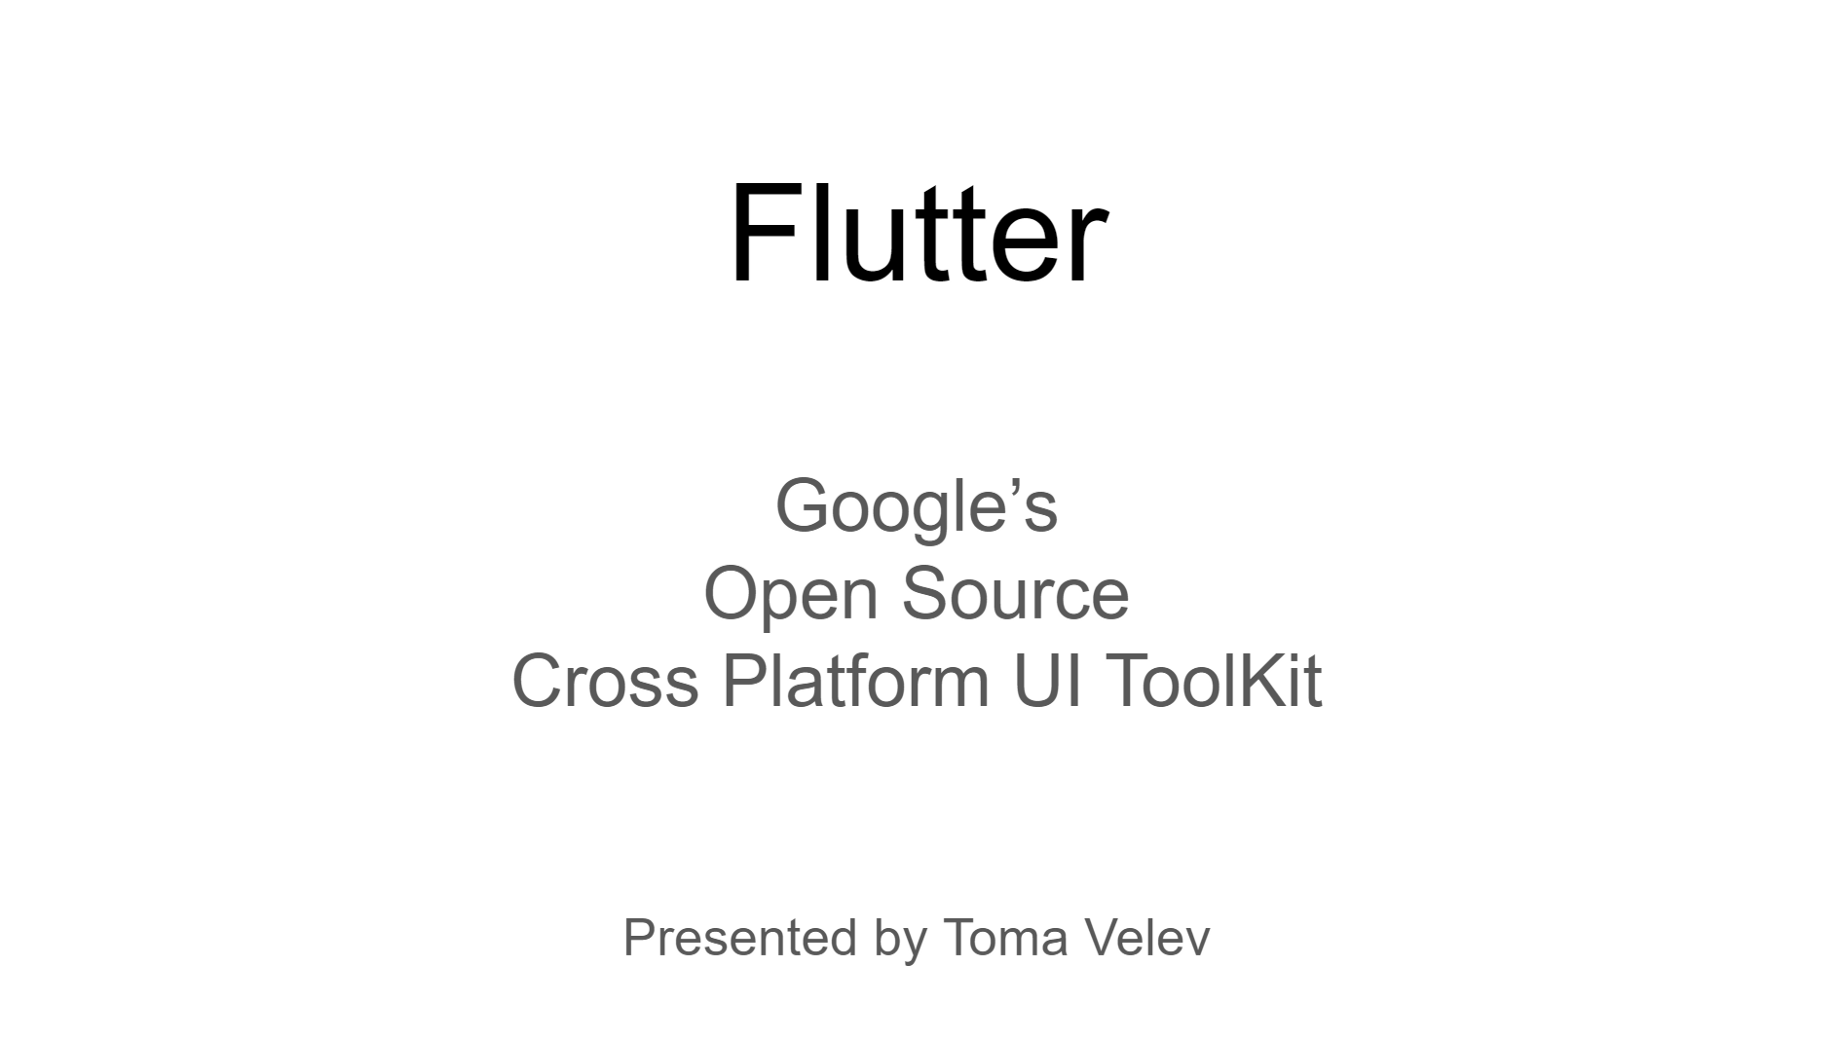 Flutter — Google's Open Source Cross Platform UI ToolKit